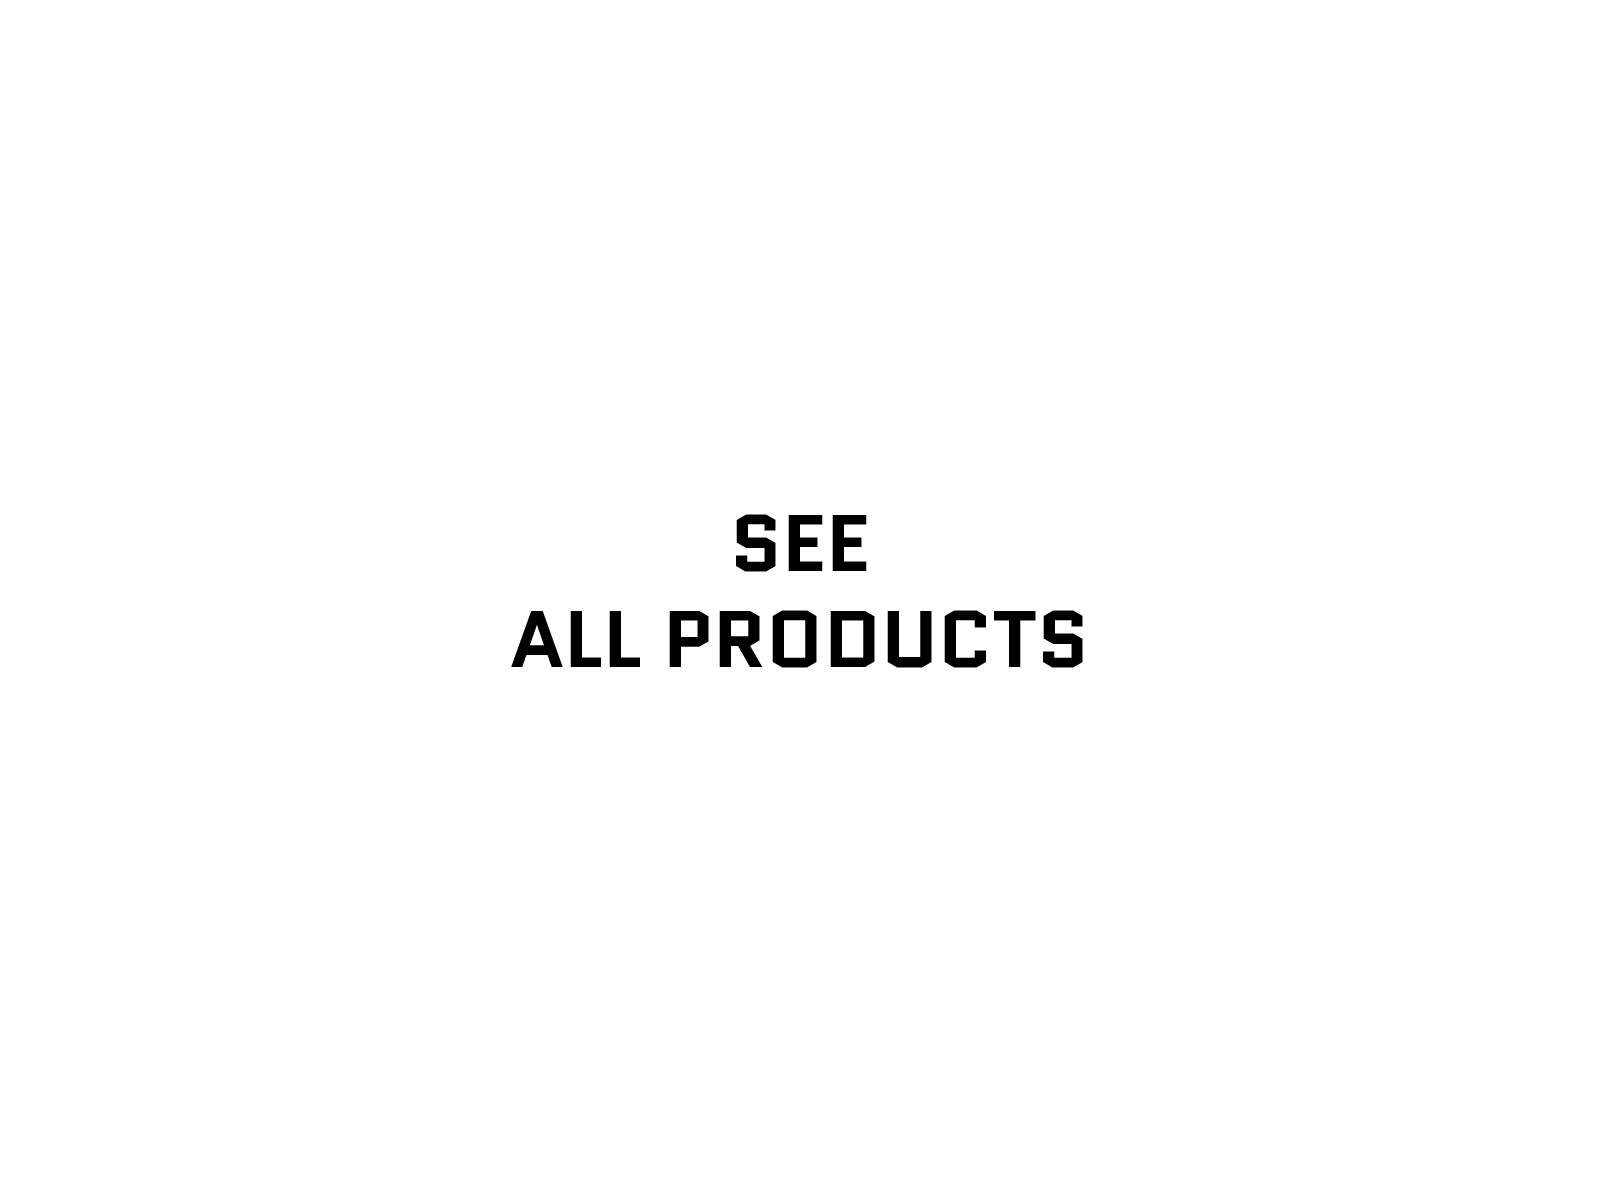 image of All products